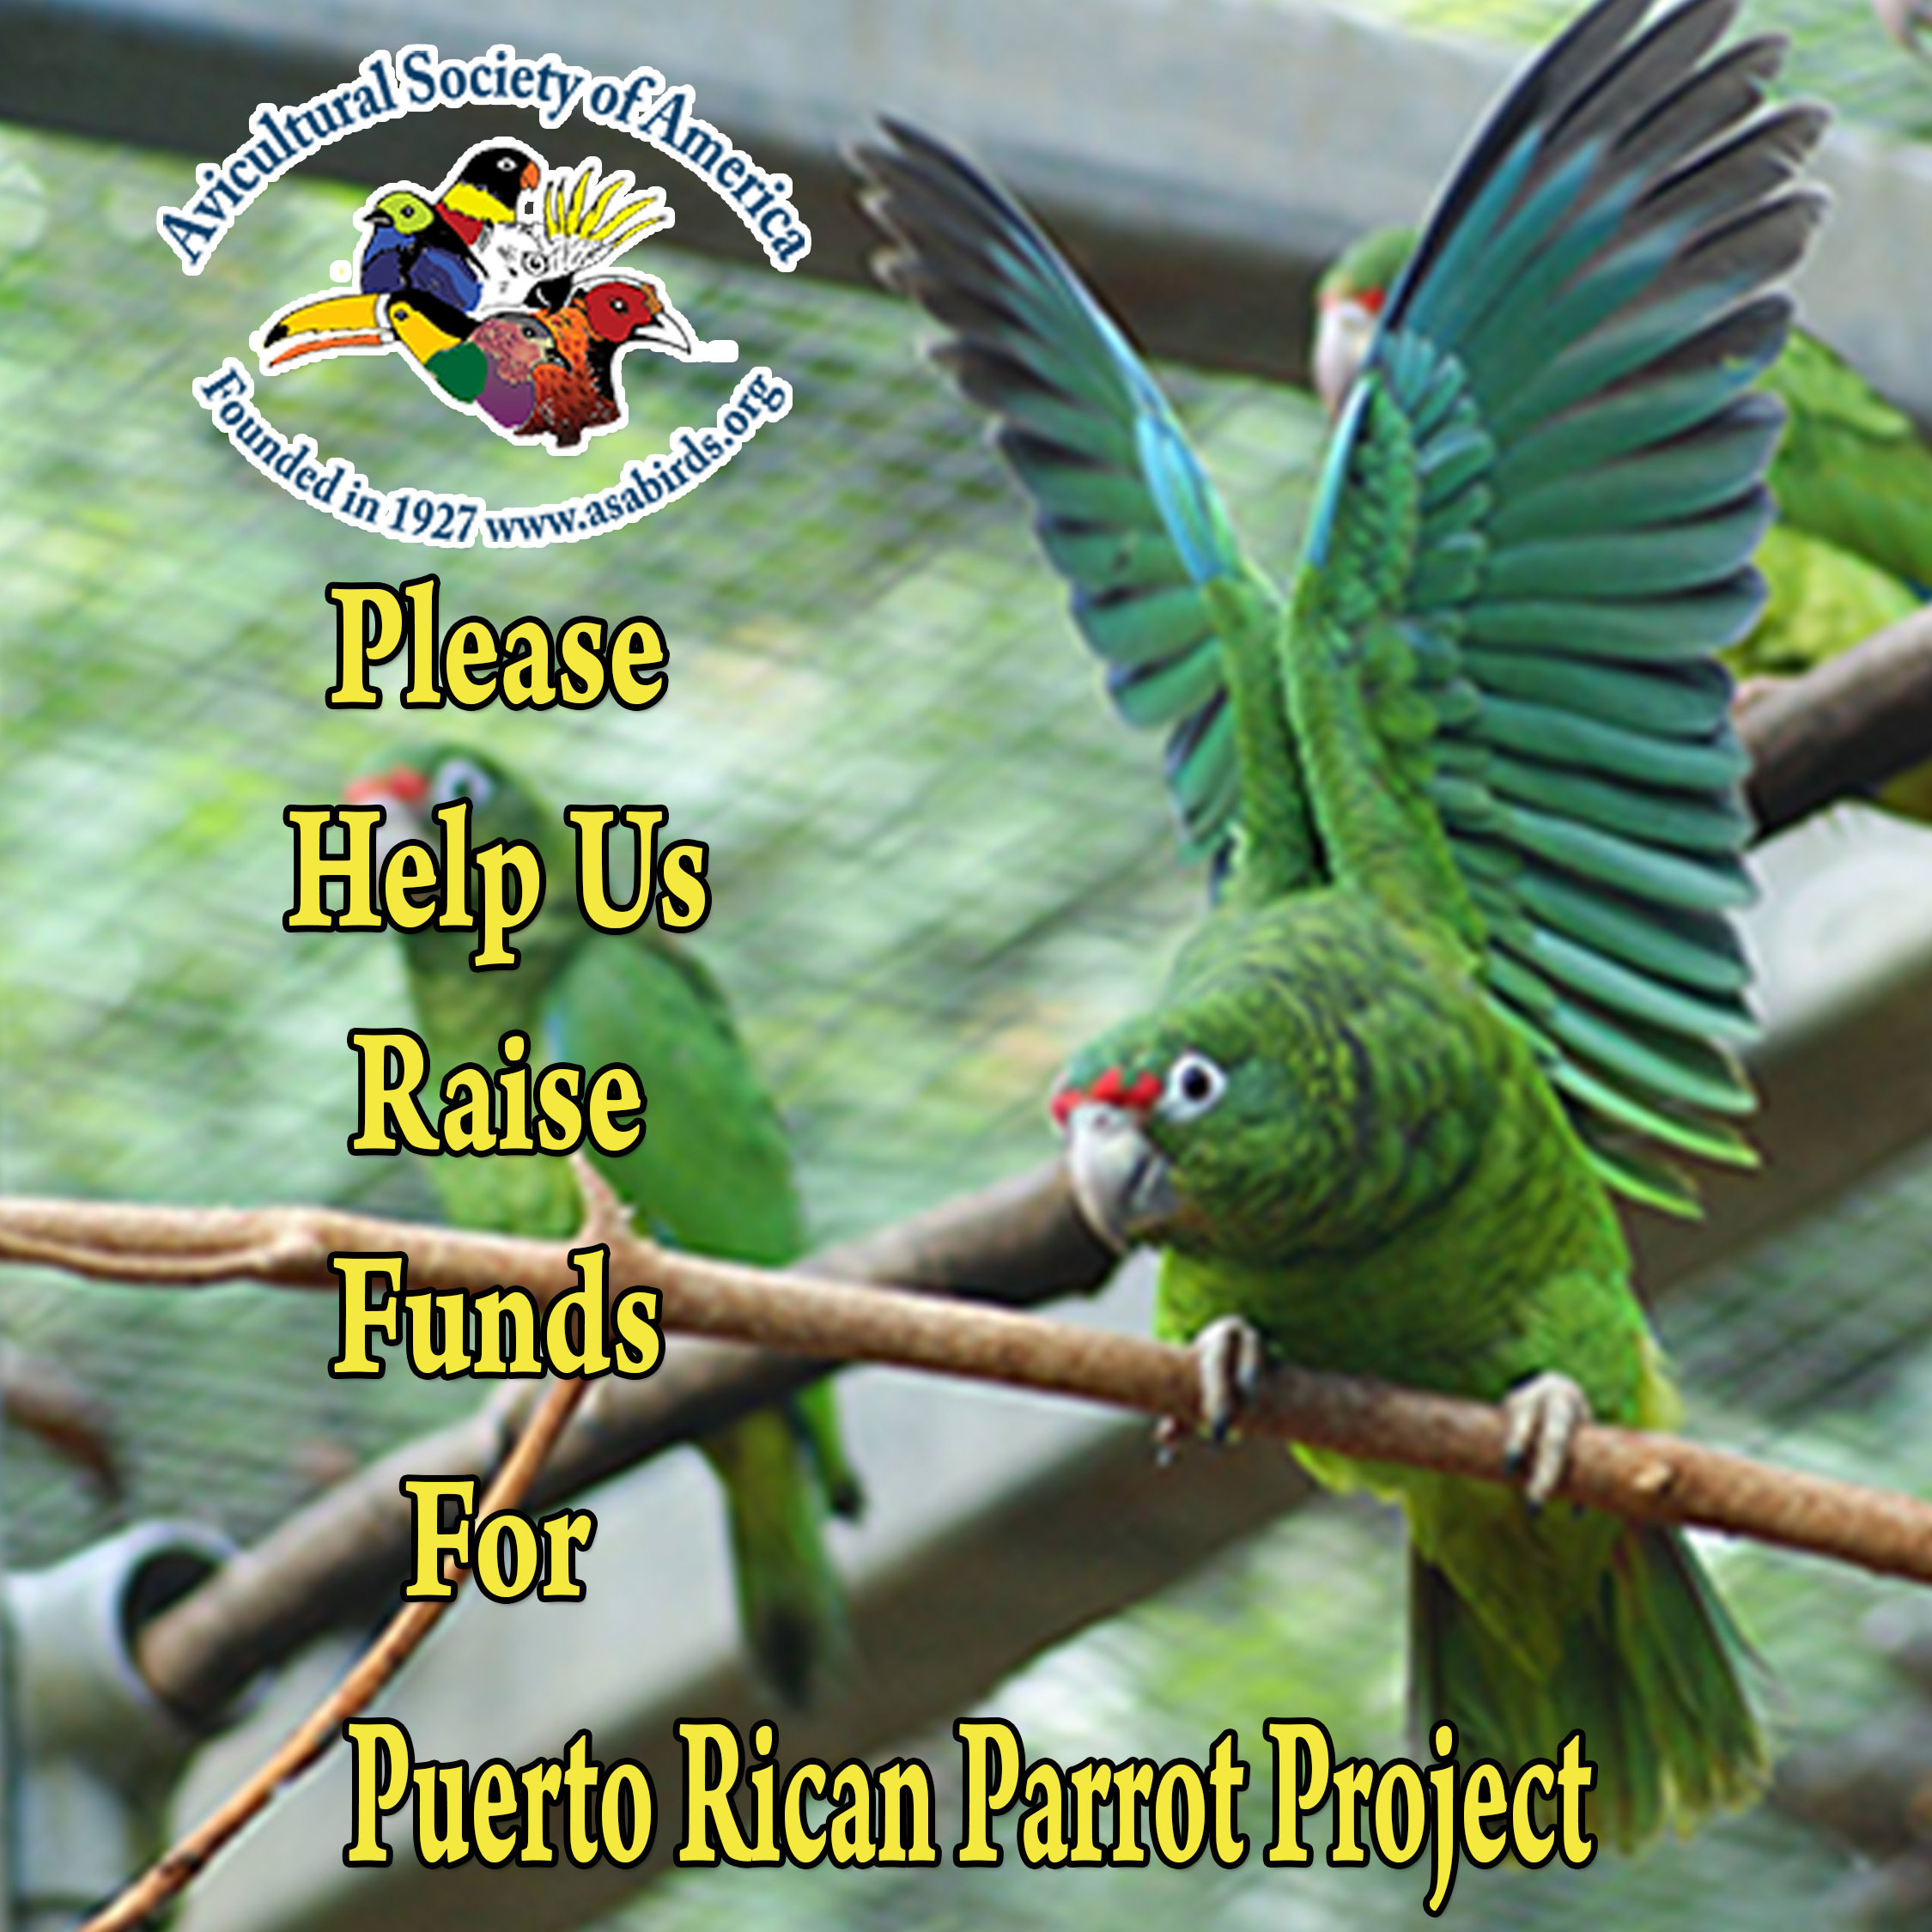 Donate To Puerto Rican Parrot Project 100